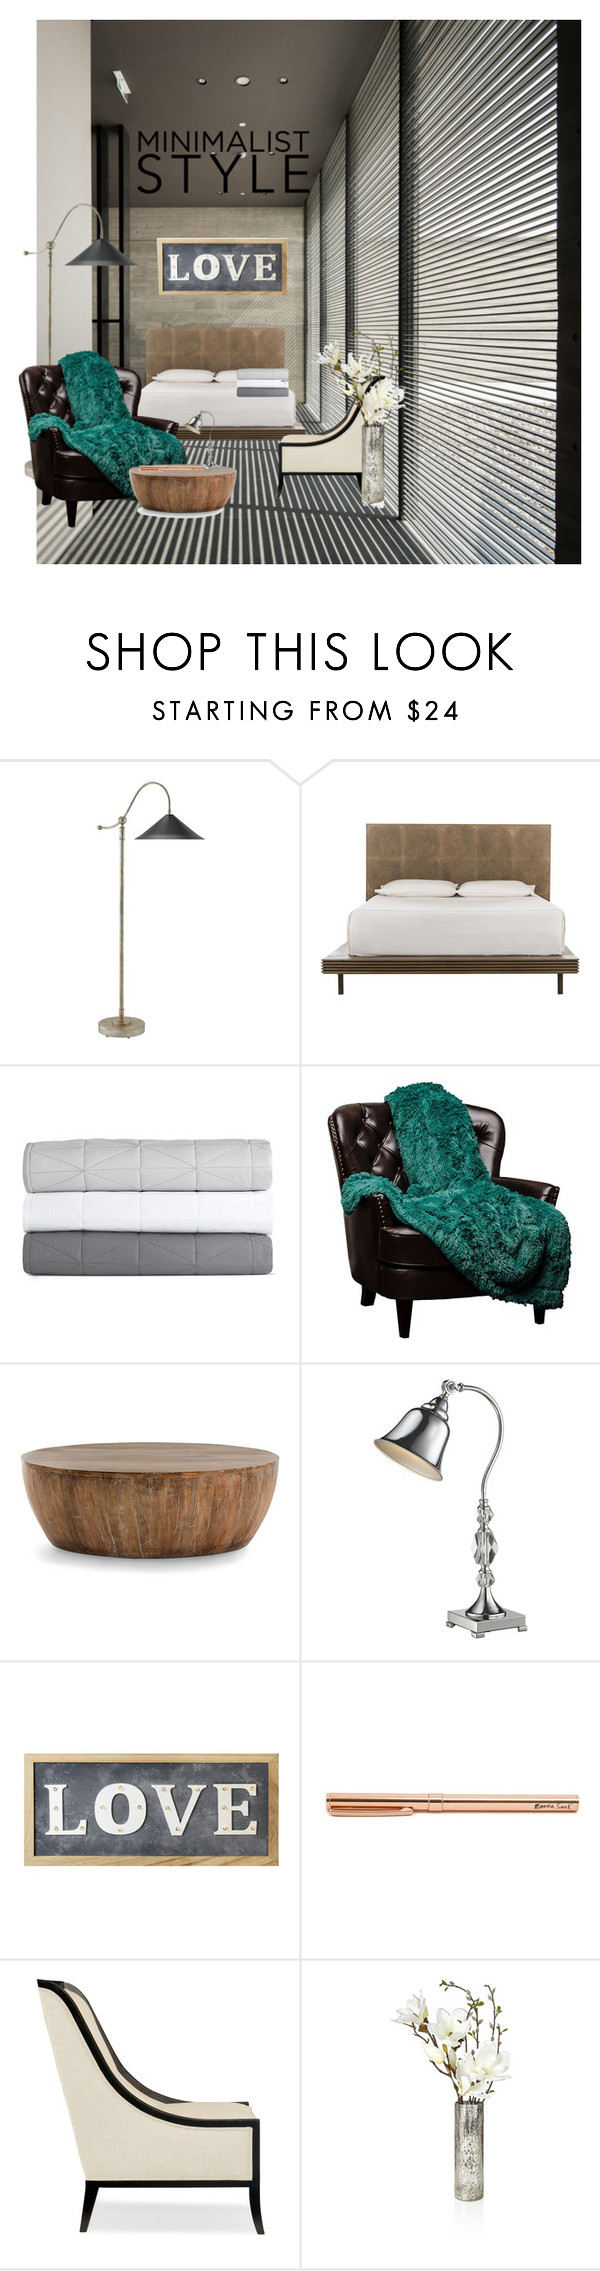 """""""Minimalist style"""" by luvstyle93 ❤ liked on Polyvore featuring interior, interiors, interior design, home, home decor, interior decorating, Brooks, Design Within Reach, Arteriors and Dale Tiffany"""